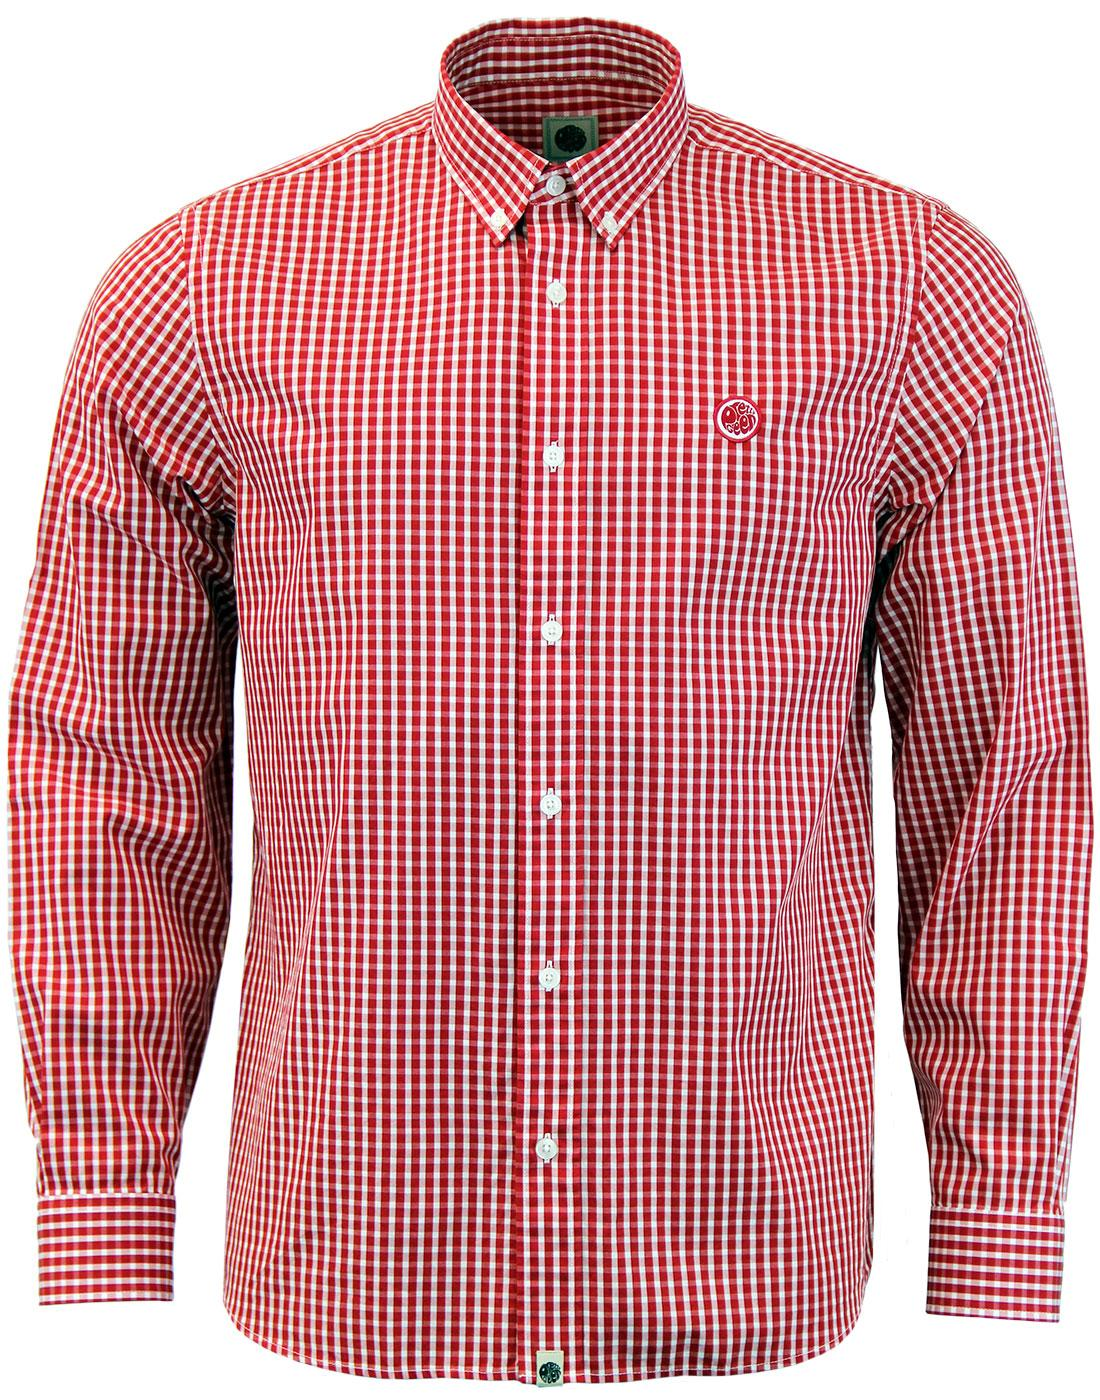 Francis PRETTY GREEN Retro Gingham Check Shirt (R)